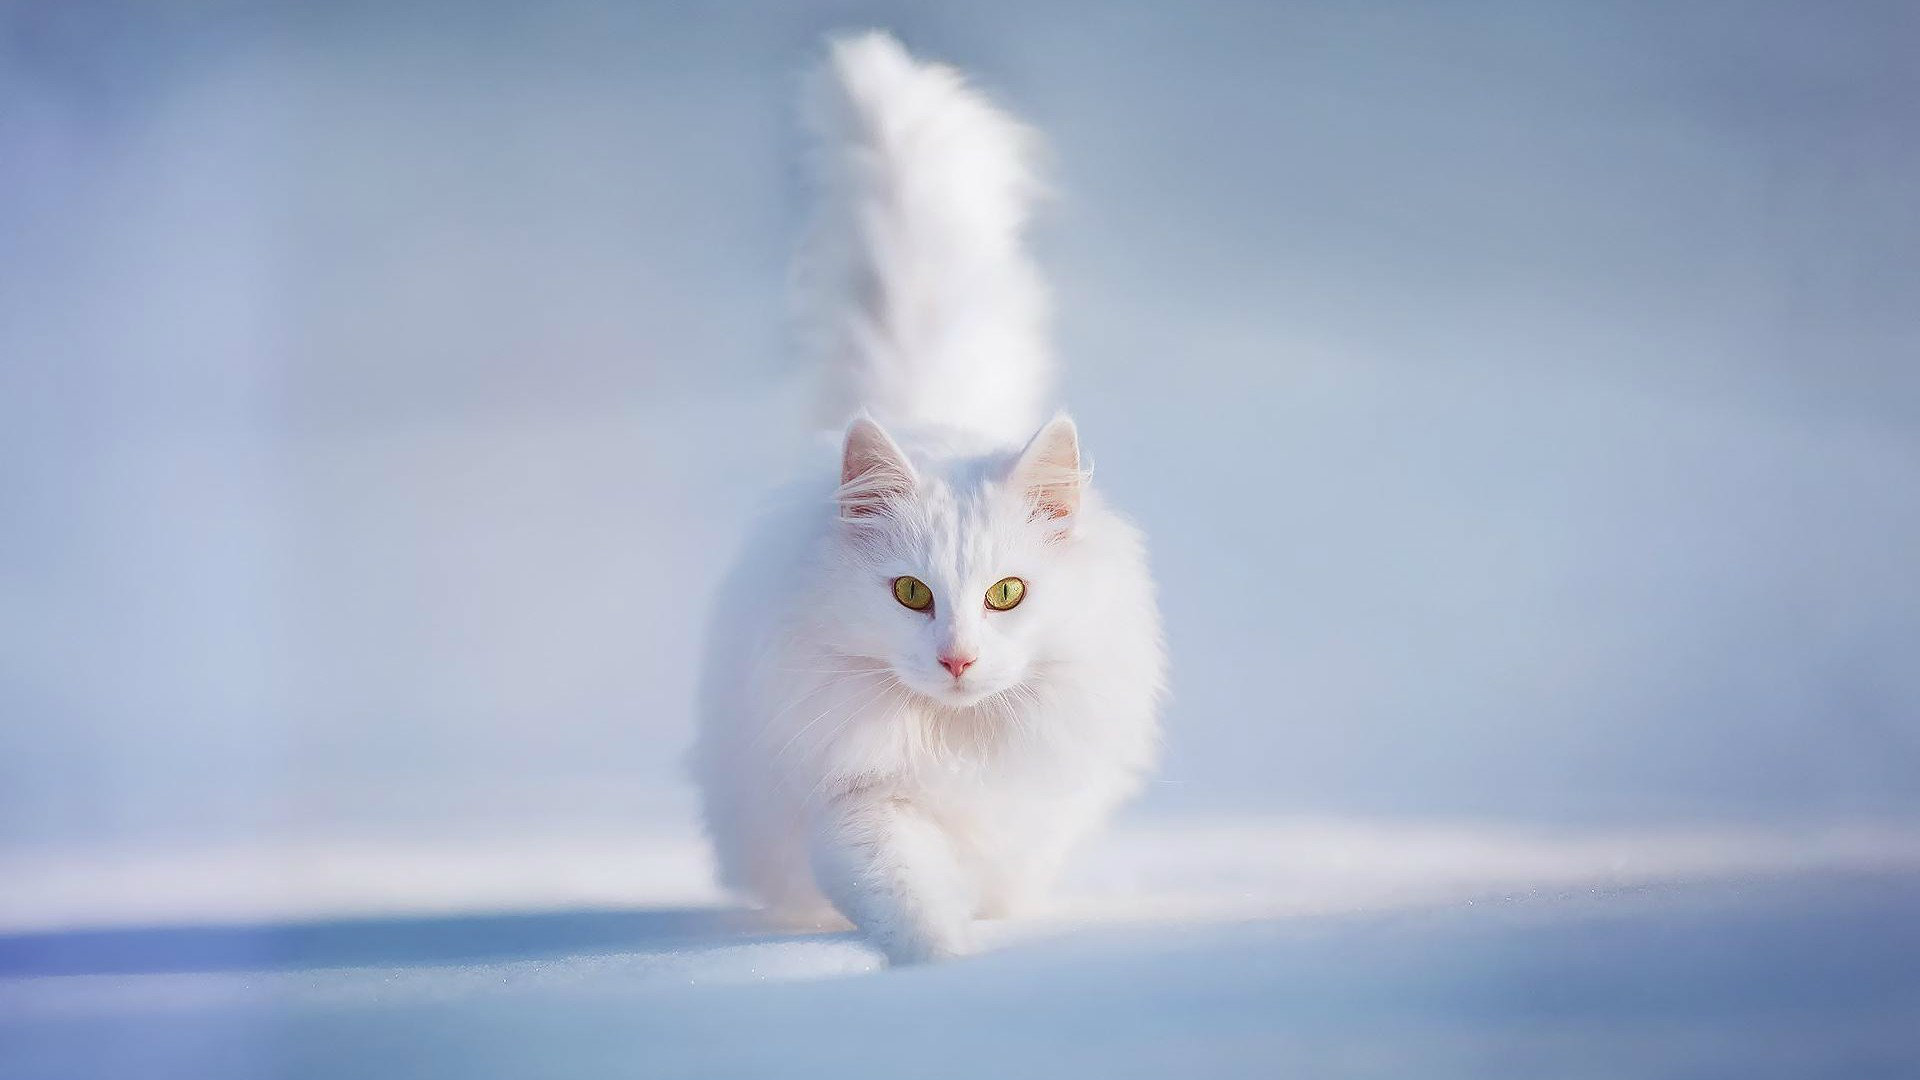 Cute White Cats Hd Wallpapers Amp Beautiful Pictures Beautiful White Cat Hd 1920x1080 Wallpaper Teahub Io